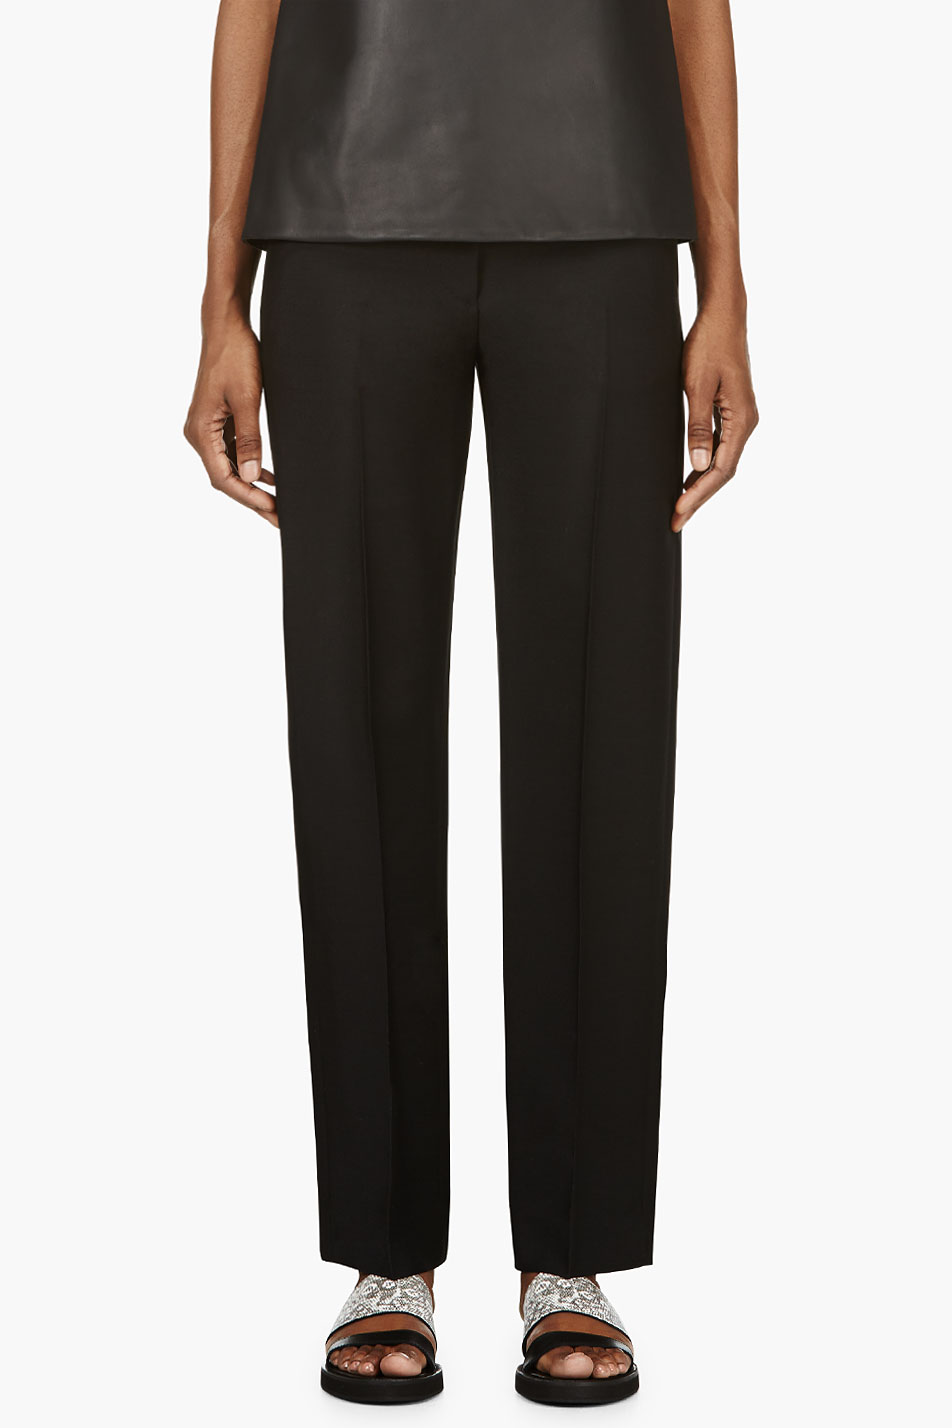 maison martin margiela black low waist pleated trousers